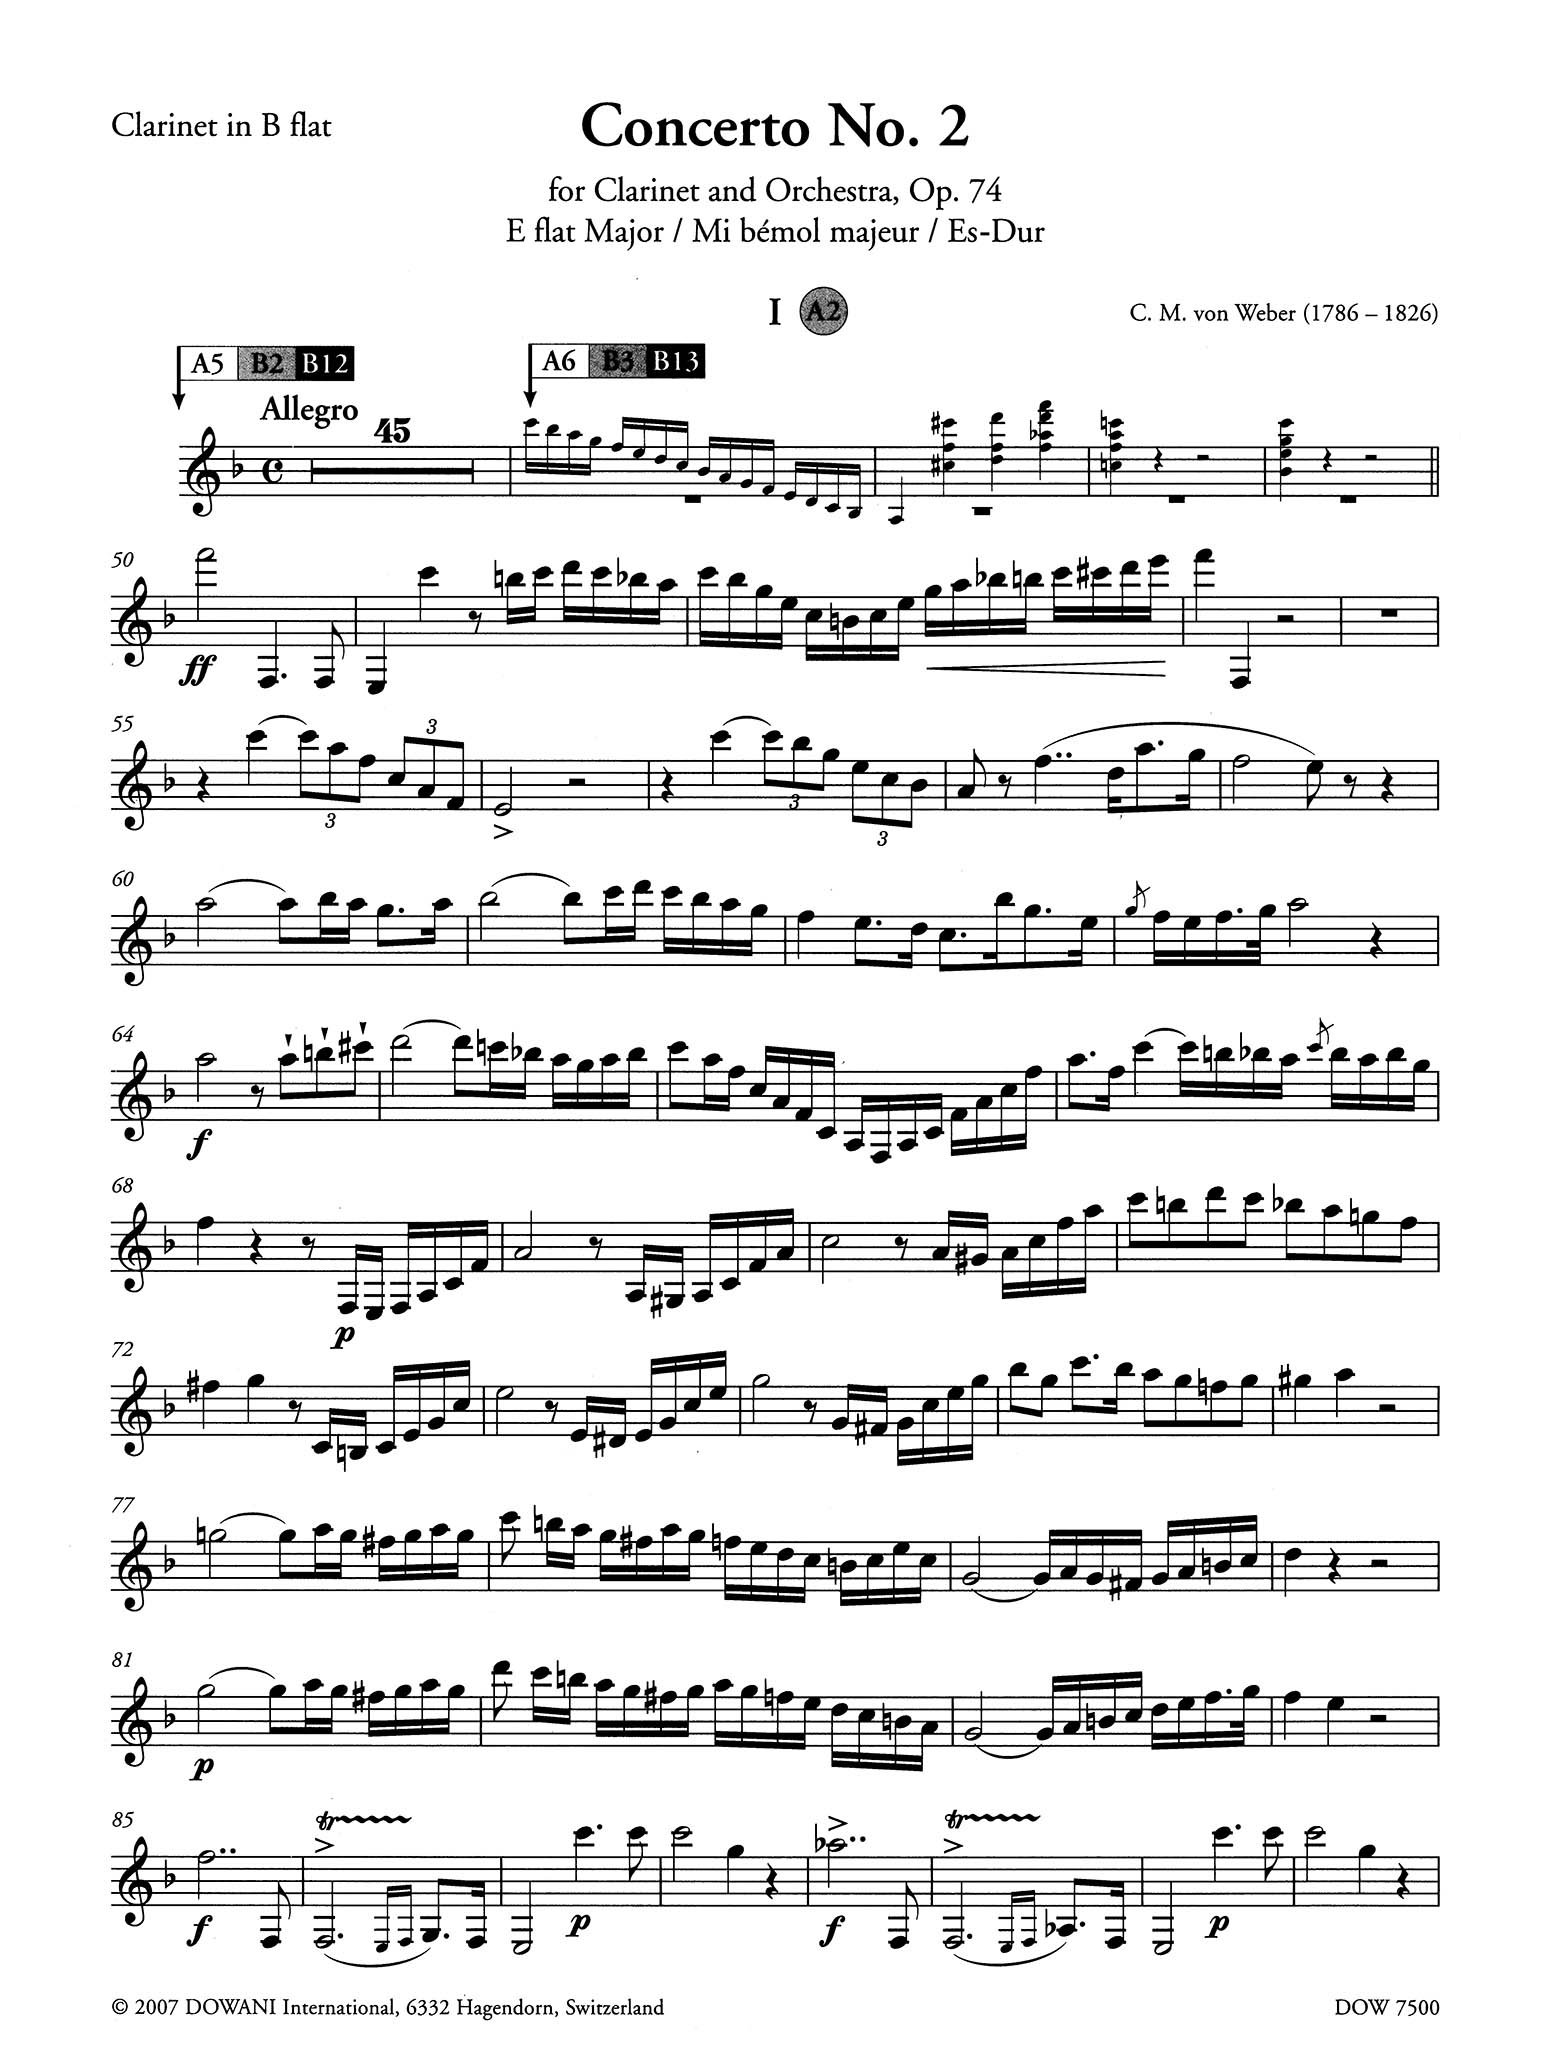 Clarinet Concerto No. 2 in E-flat Major, Op. 74 Clarinet part